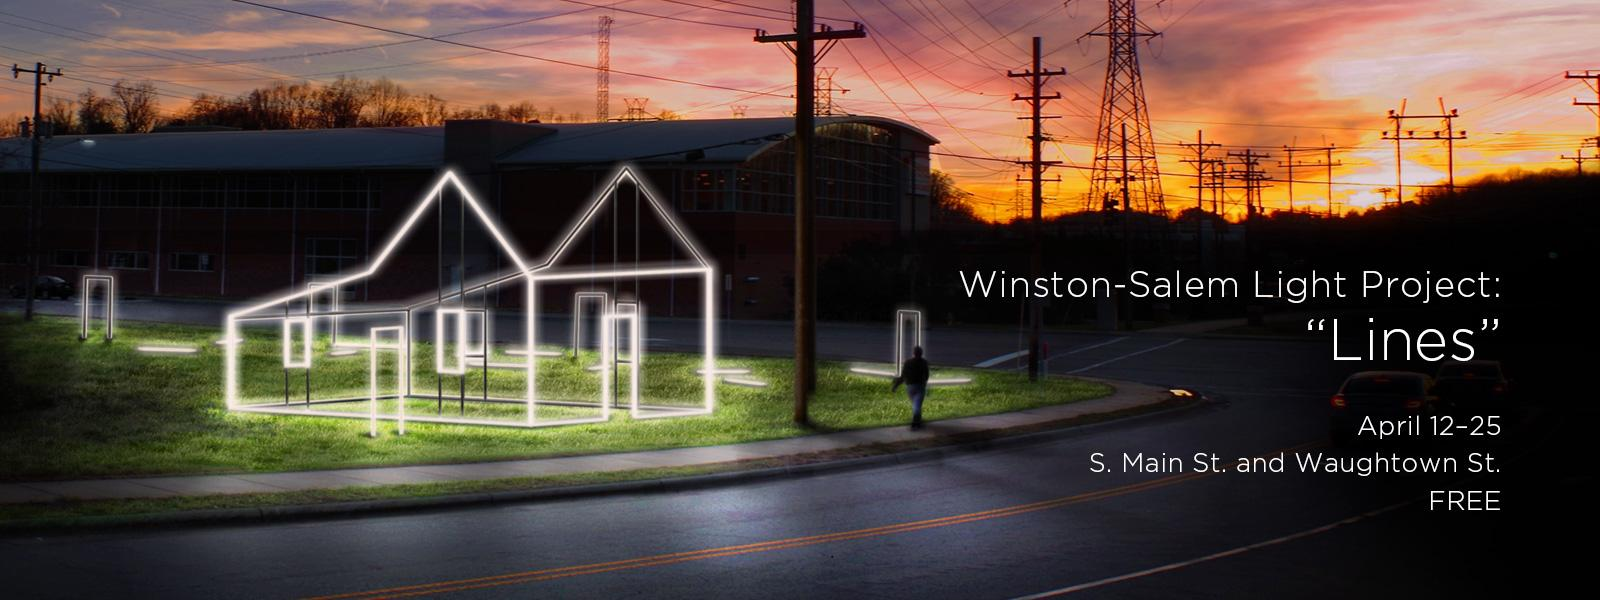 The 11th annual Winston-Salem Light Project>>FREE EVENT